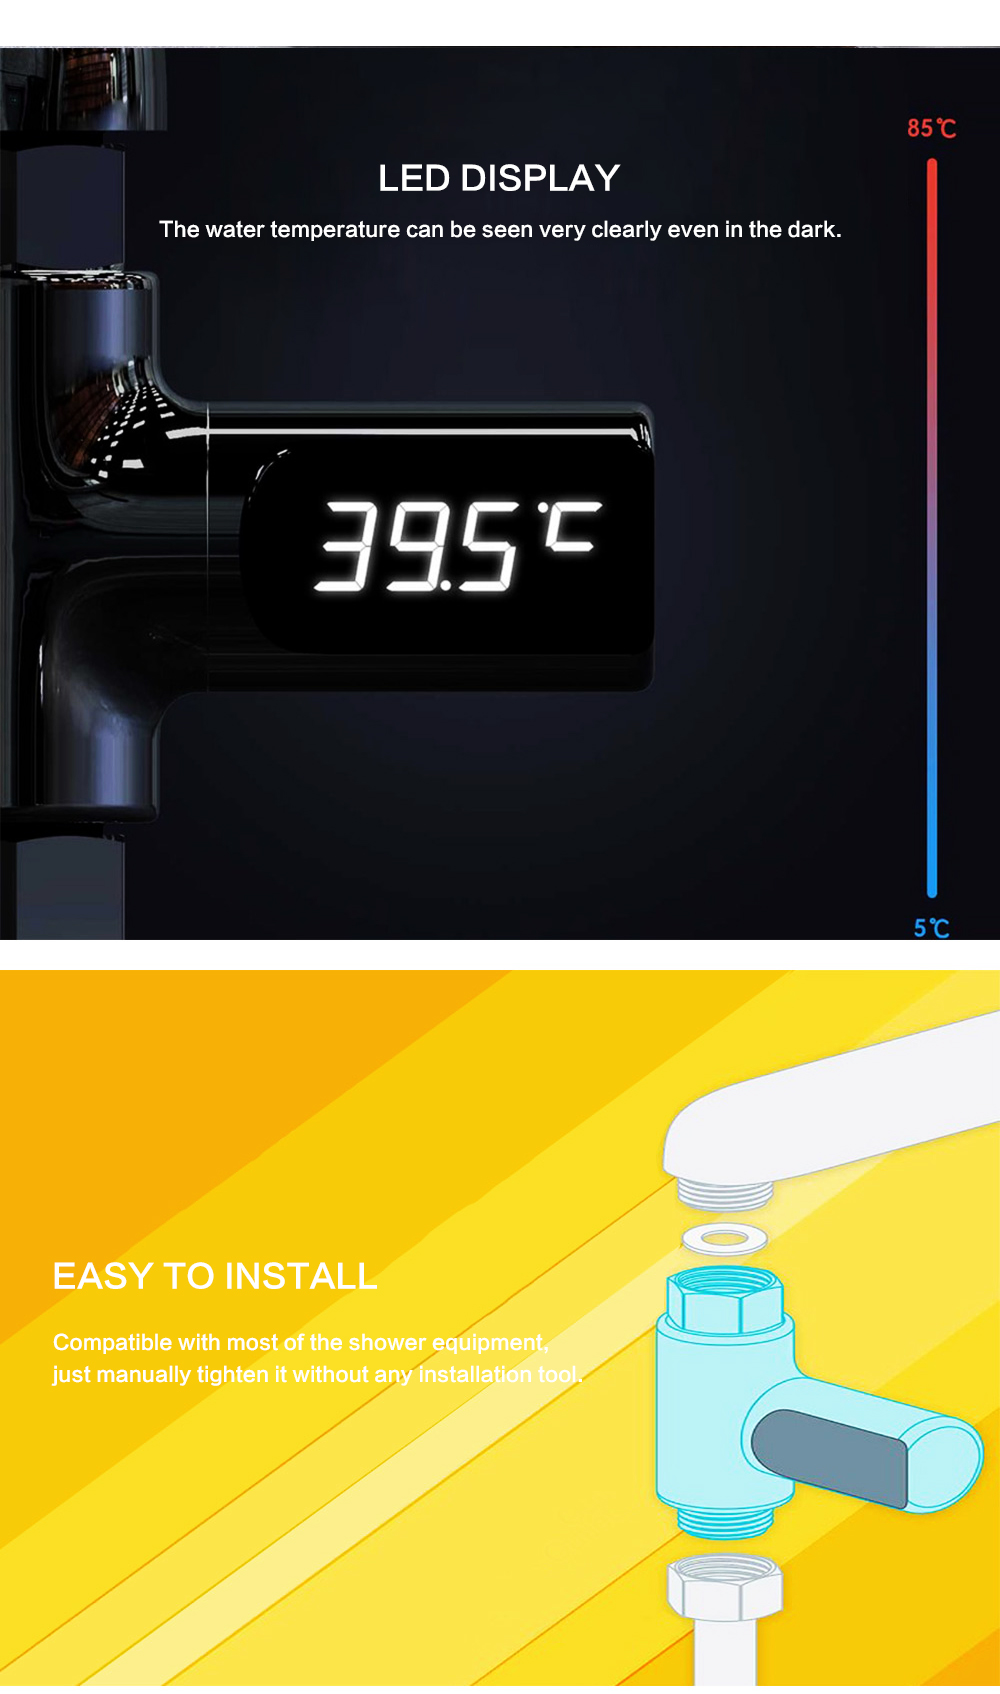 H1151925629e646e79b4e557913eaed39v LED Temperature Display Bathroom Shower Faucet Electricity Water Temperature Monitor for Baby Care Digital Faucet Thermometer